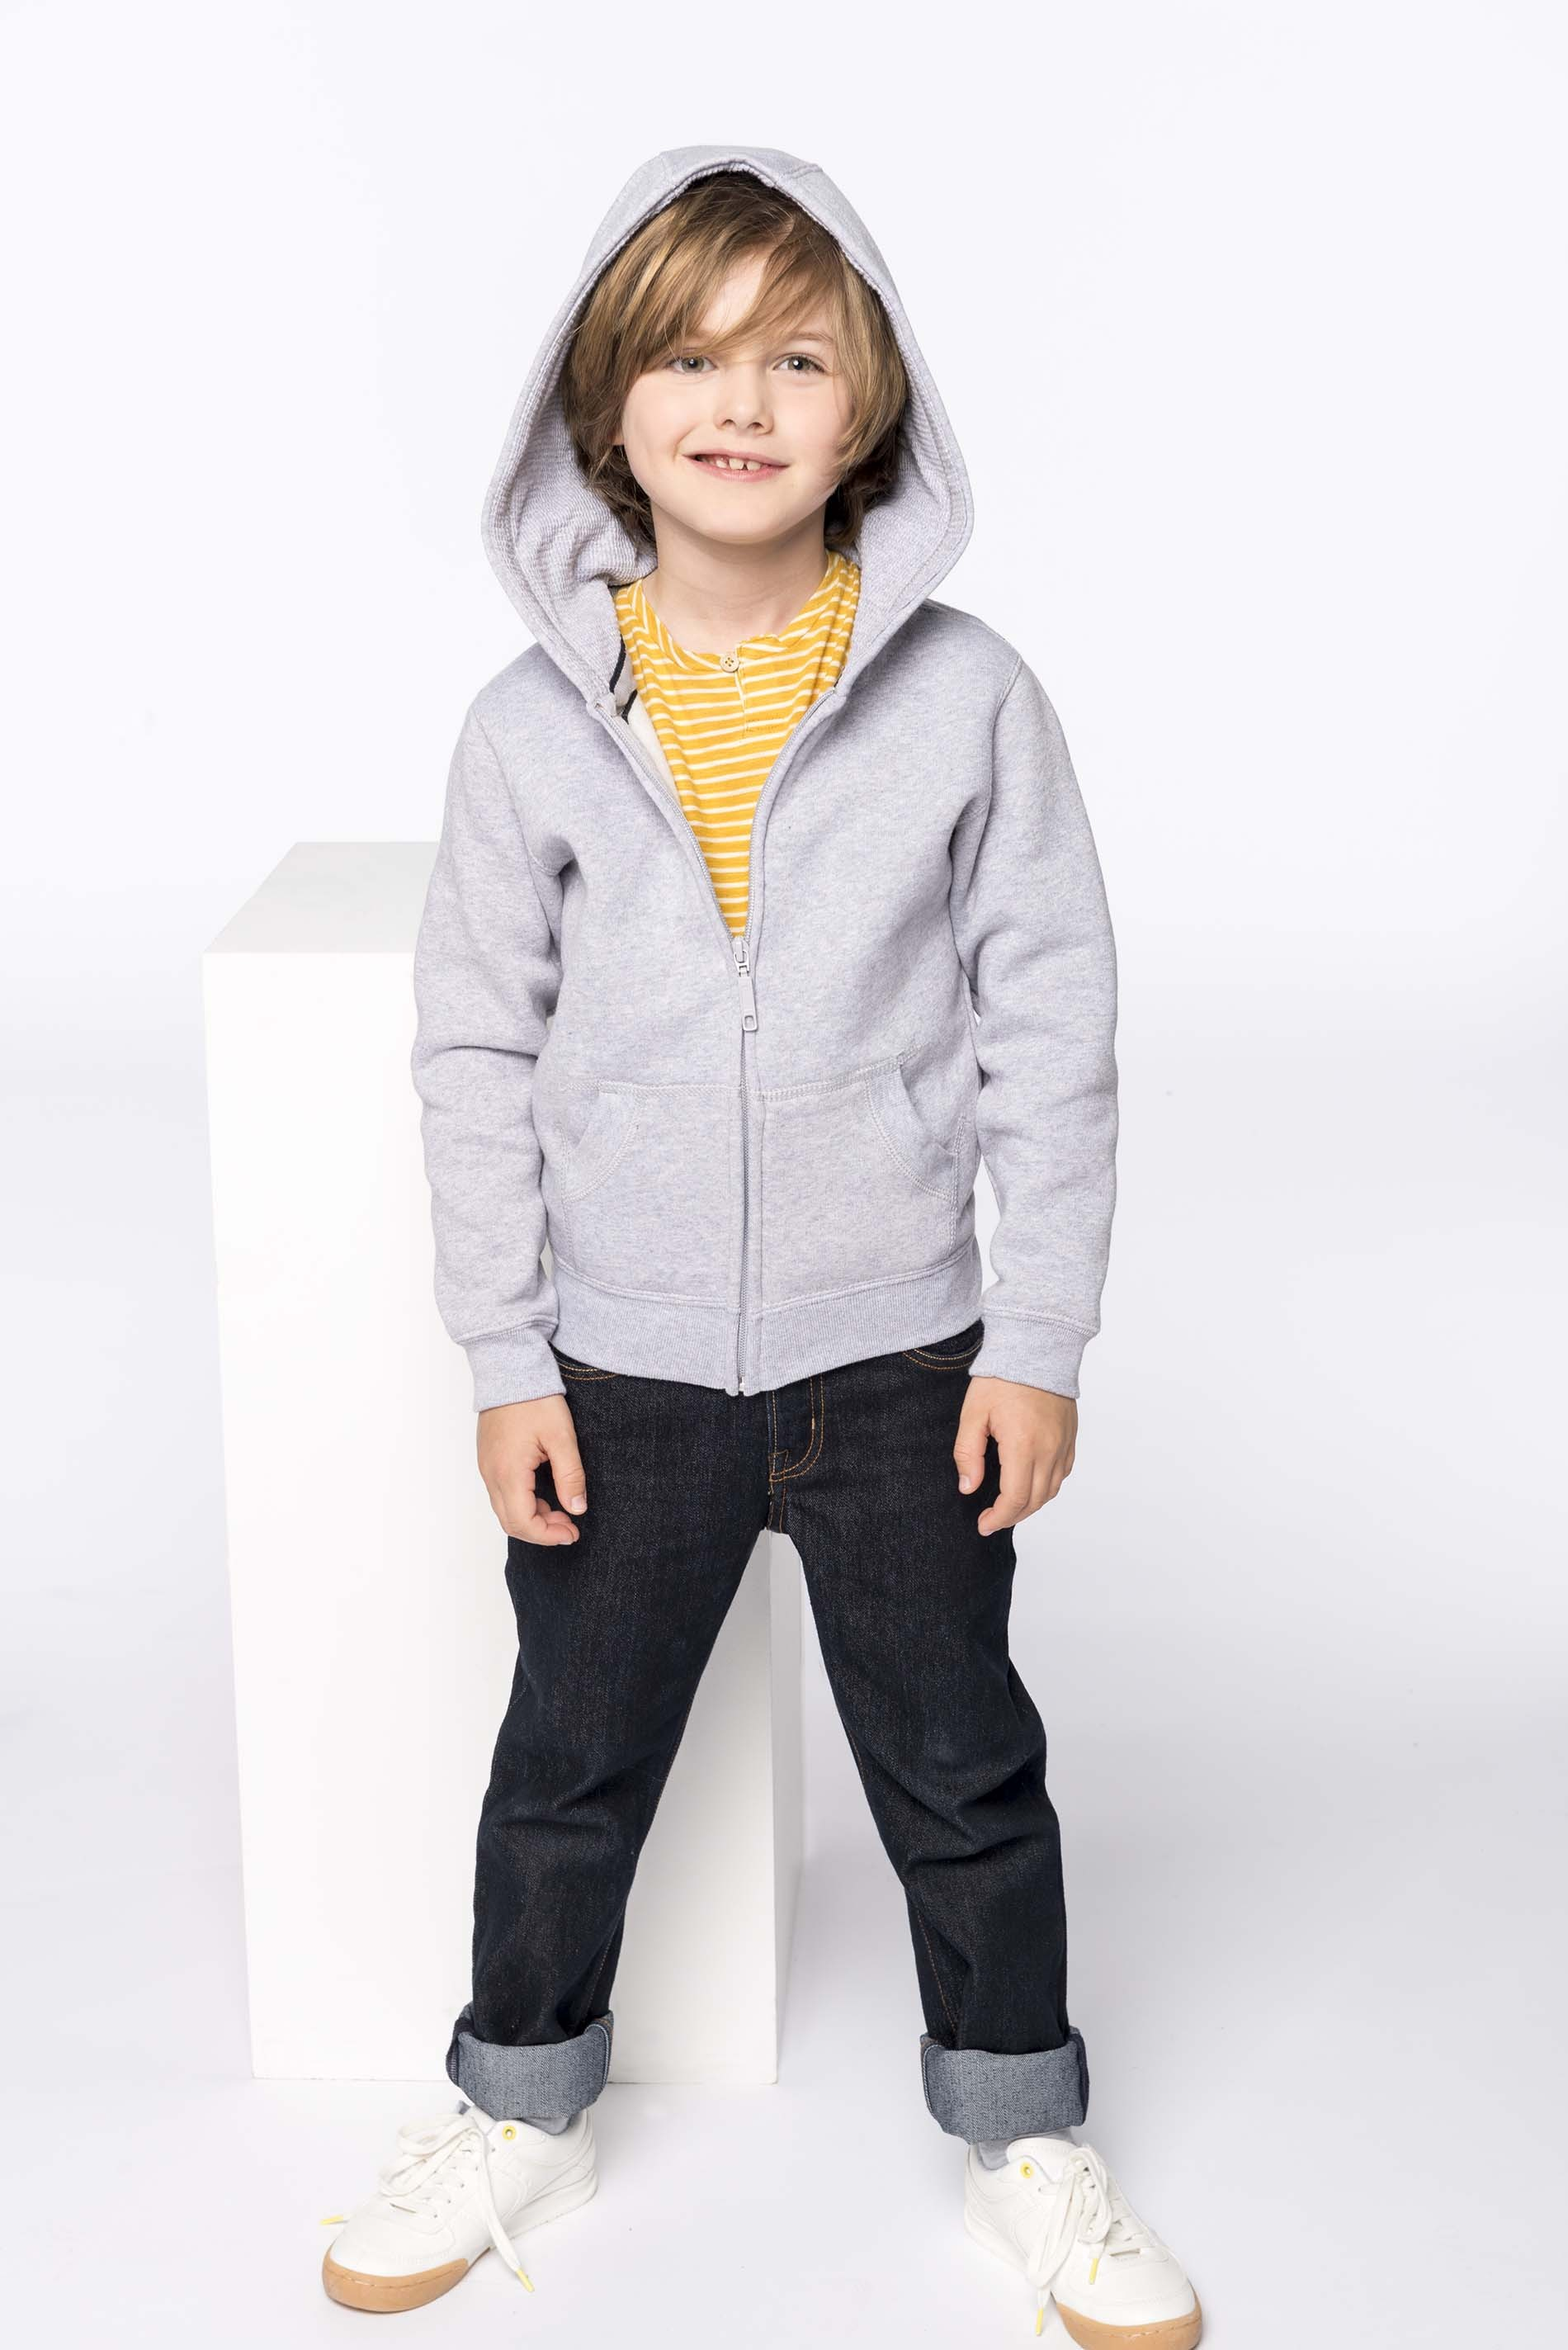 Kids' full zip hooded sweatshirt bērnu jaka ar kapuci